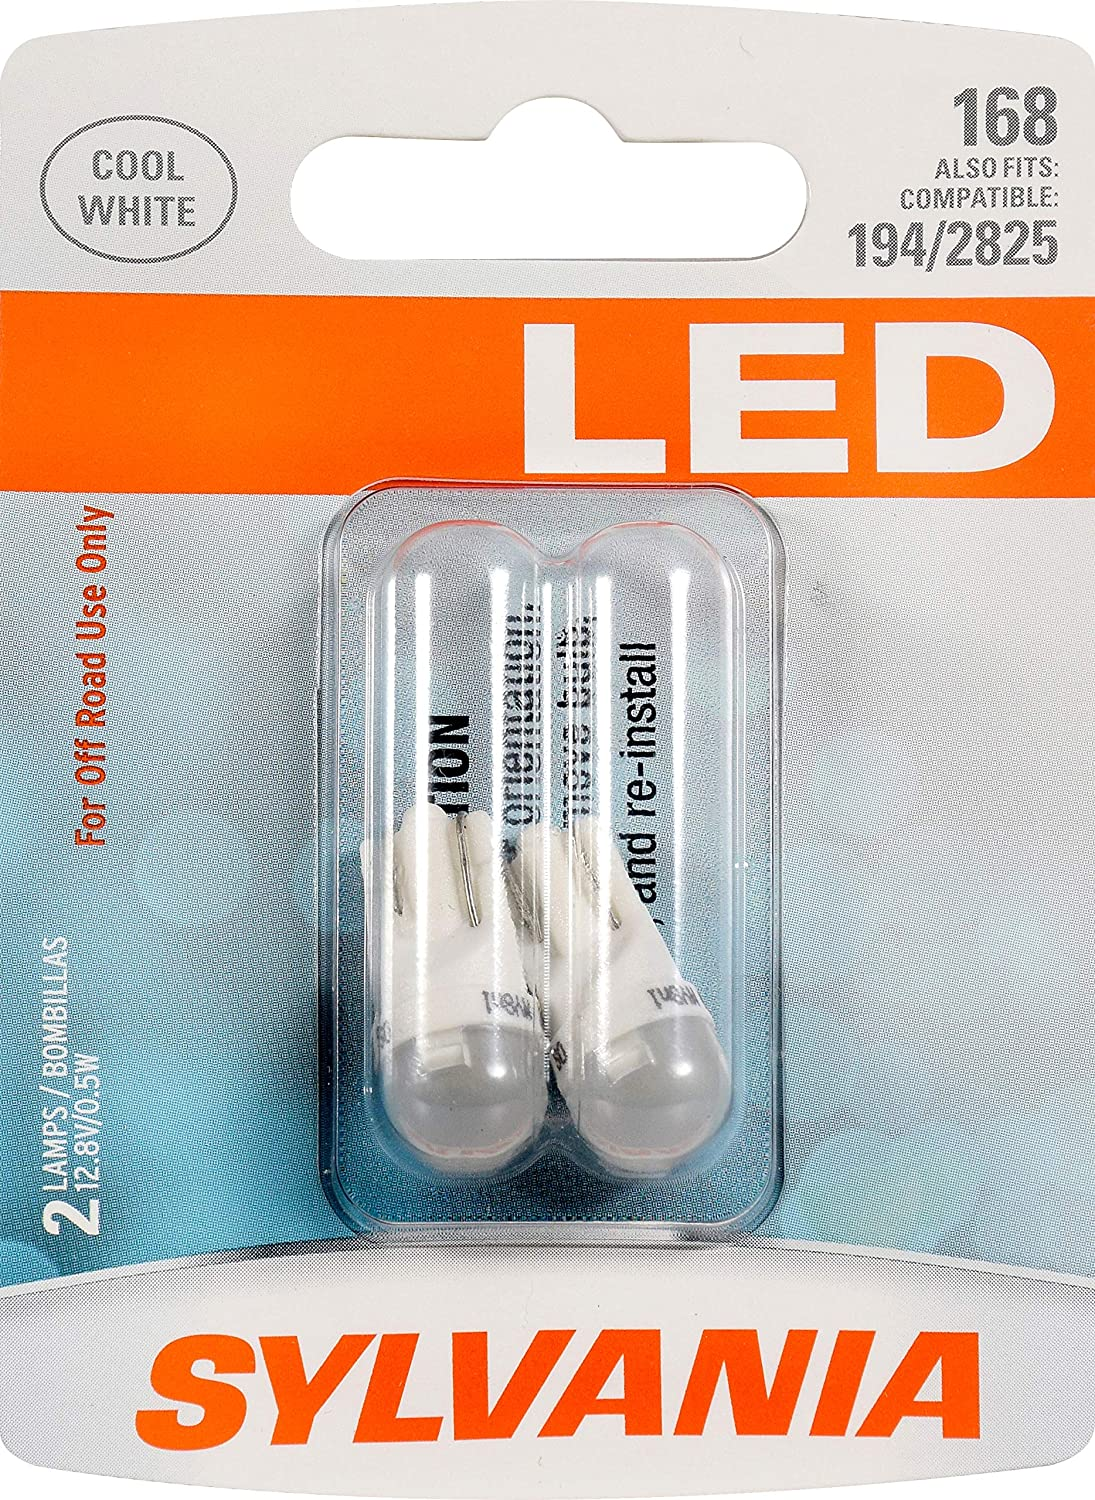 Sylvania Premium LED light 168 Red Two Bulbs Trunk Dome Drive Door Step Parking